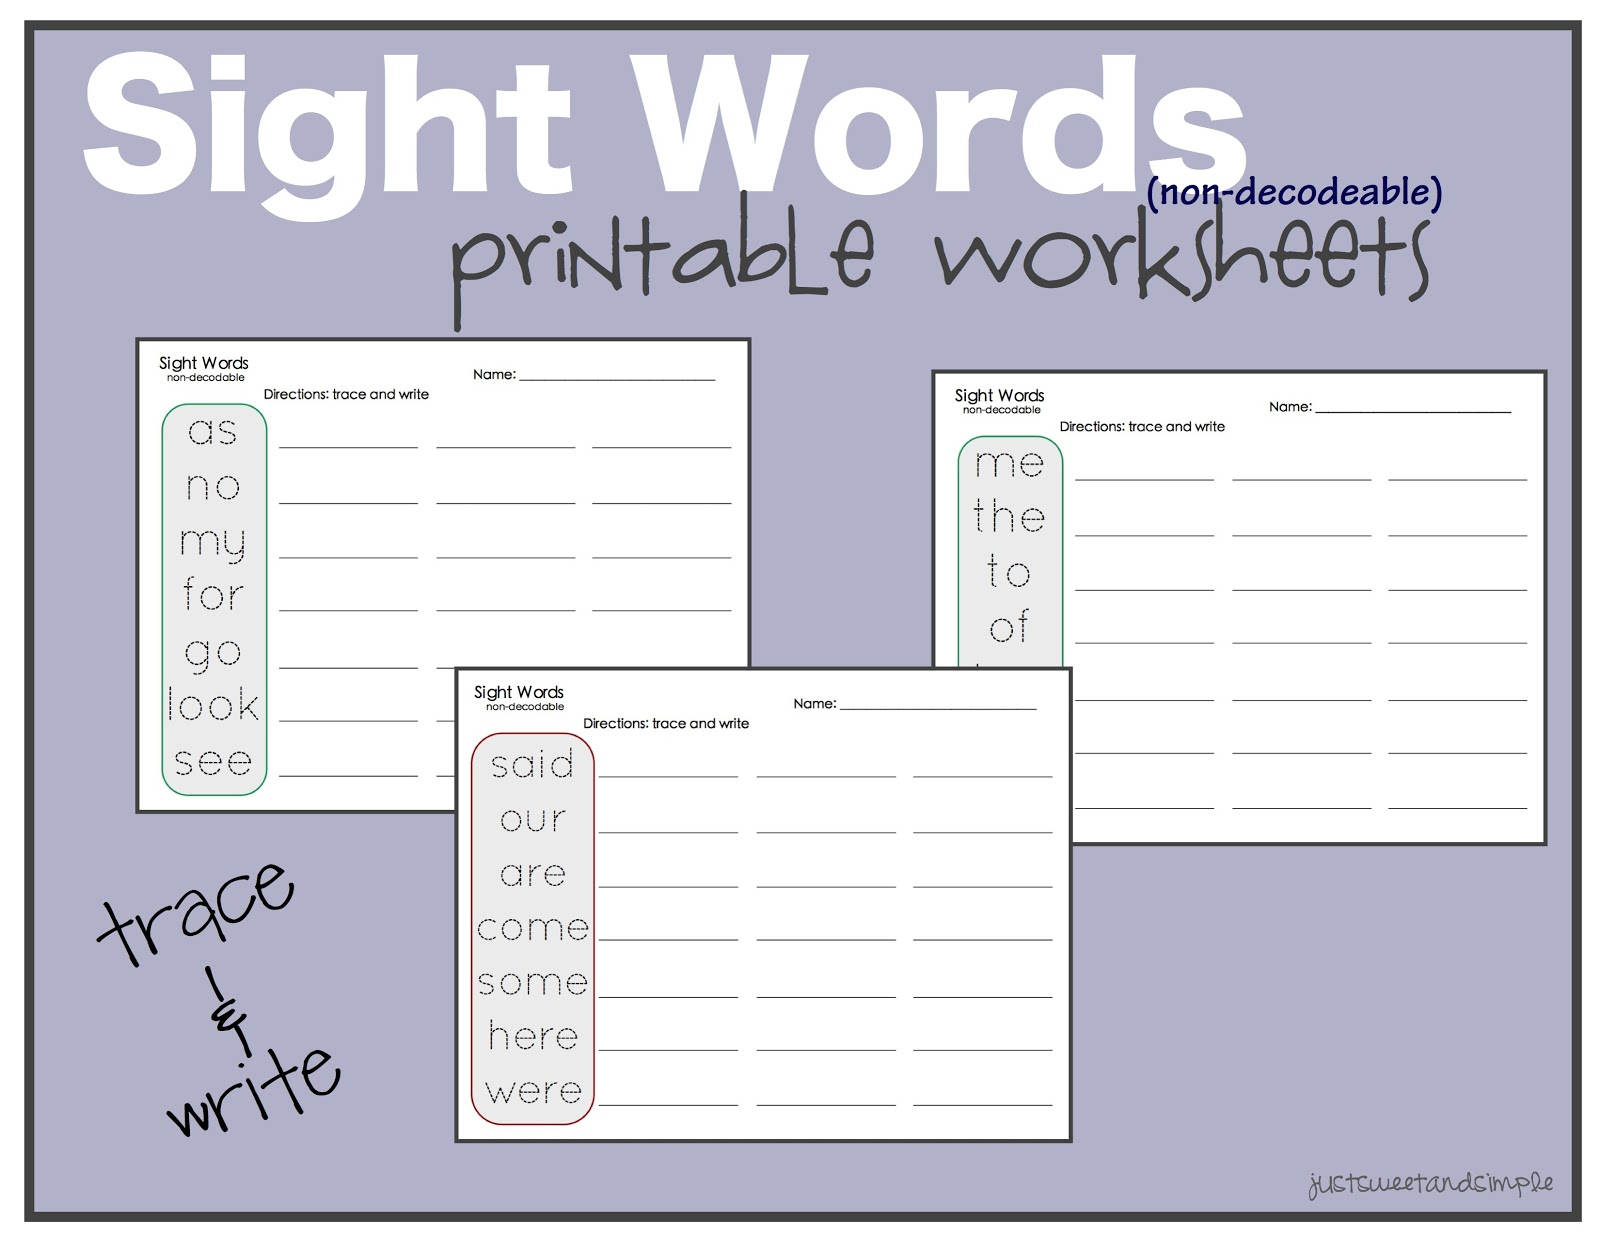 Sweet Word Preschool Practice: preschool worksheet  Sight sight and Simple: Practice Worksheets word